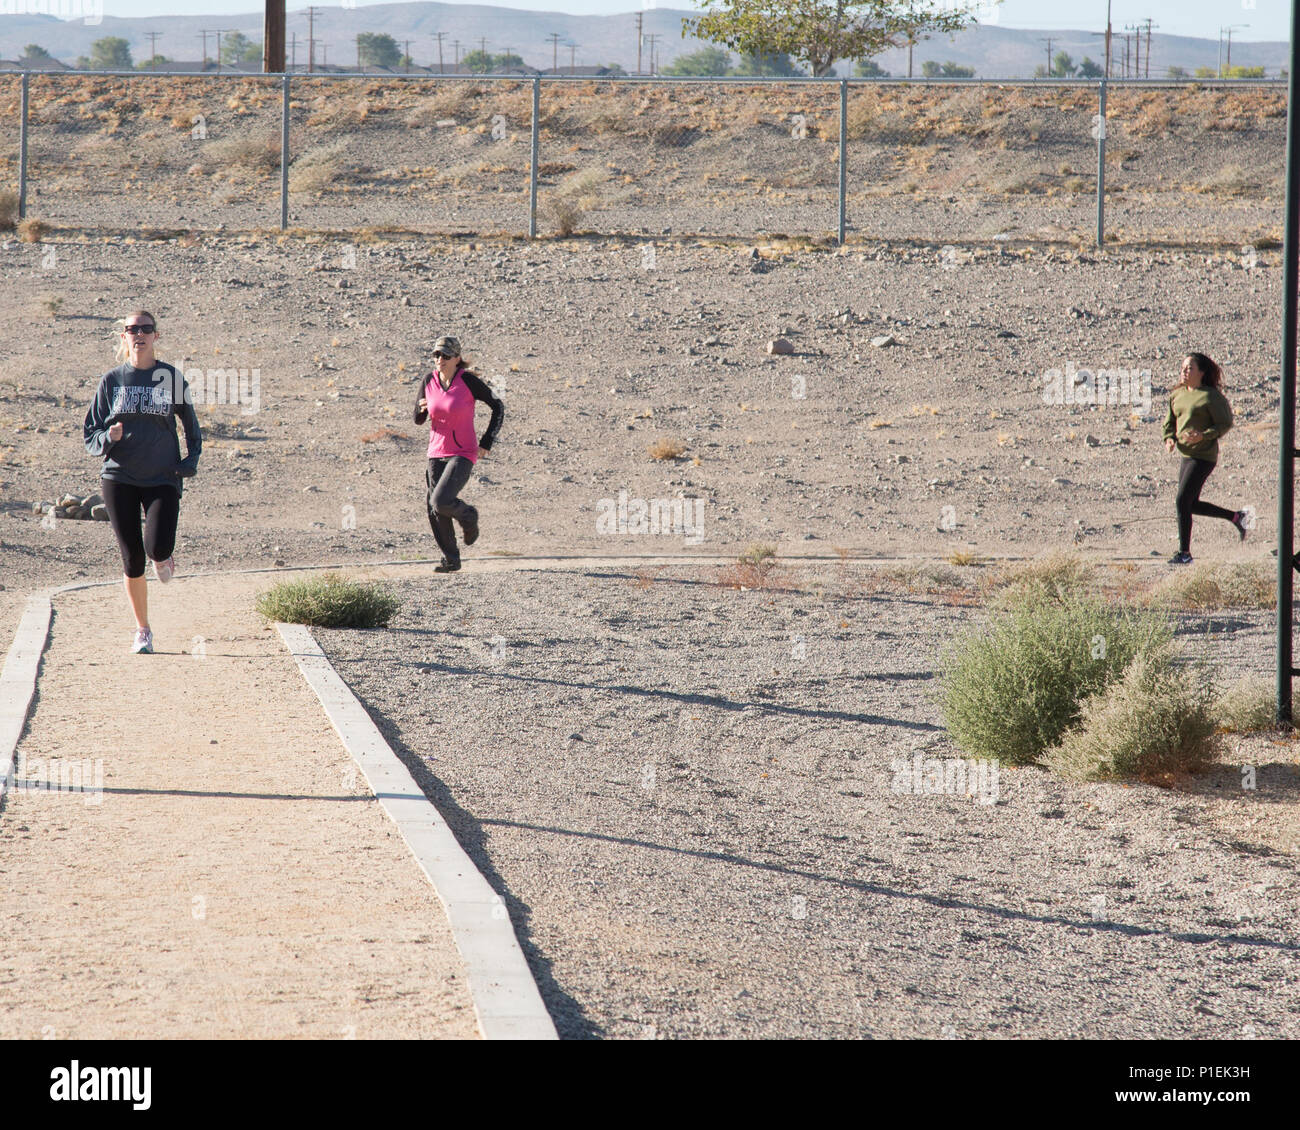 Ashley Ignatz takes the lead, with Jamie Teale and Jennifer Wolef close behind, during the running portion of the modified Combat Fitness Test the wives participated in during Jane Wayne Day aboard Marine Corps Logistics Base Barstow, Calif., Oct. 14. The event gives military spouses the opportunity to experience life as a Marine for a day. - Stock Image